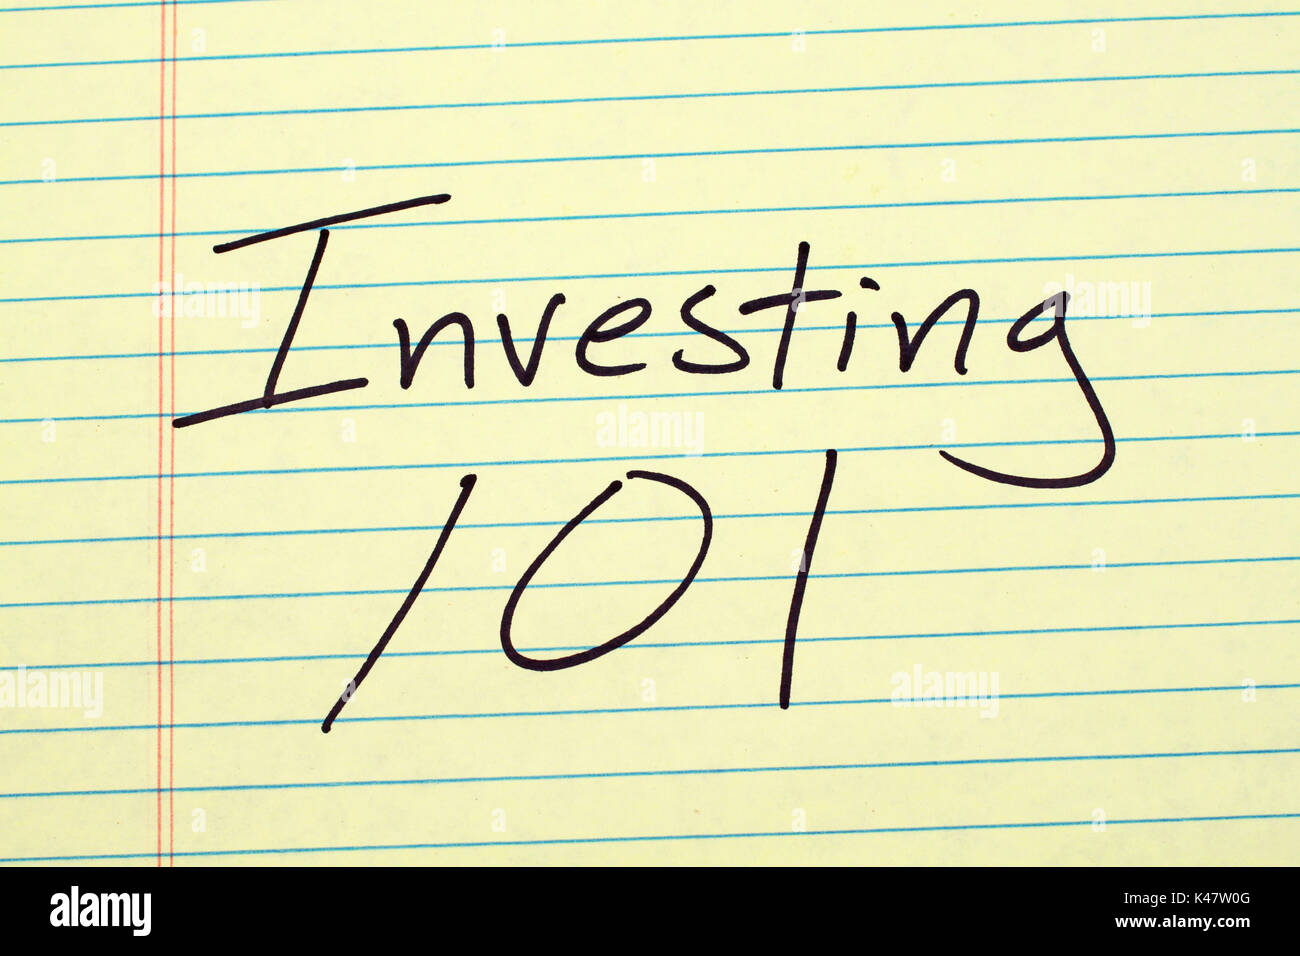 The words 'Investing 101' on a yellow legal pad - Stock Image